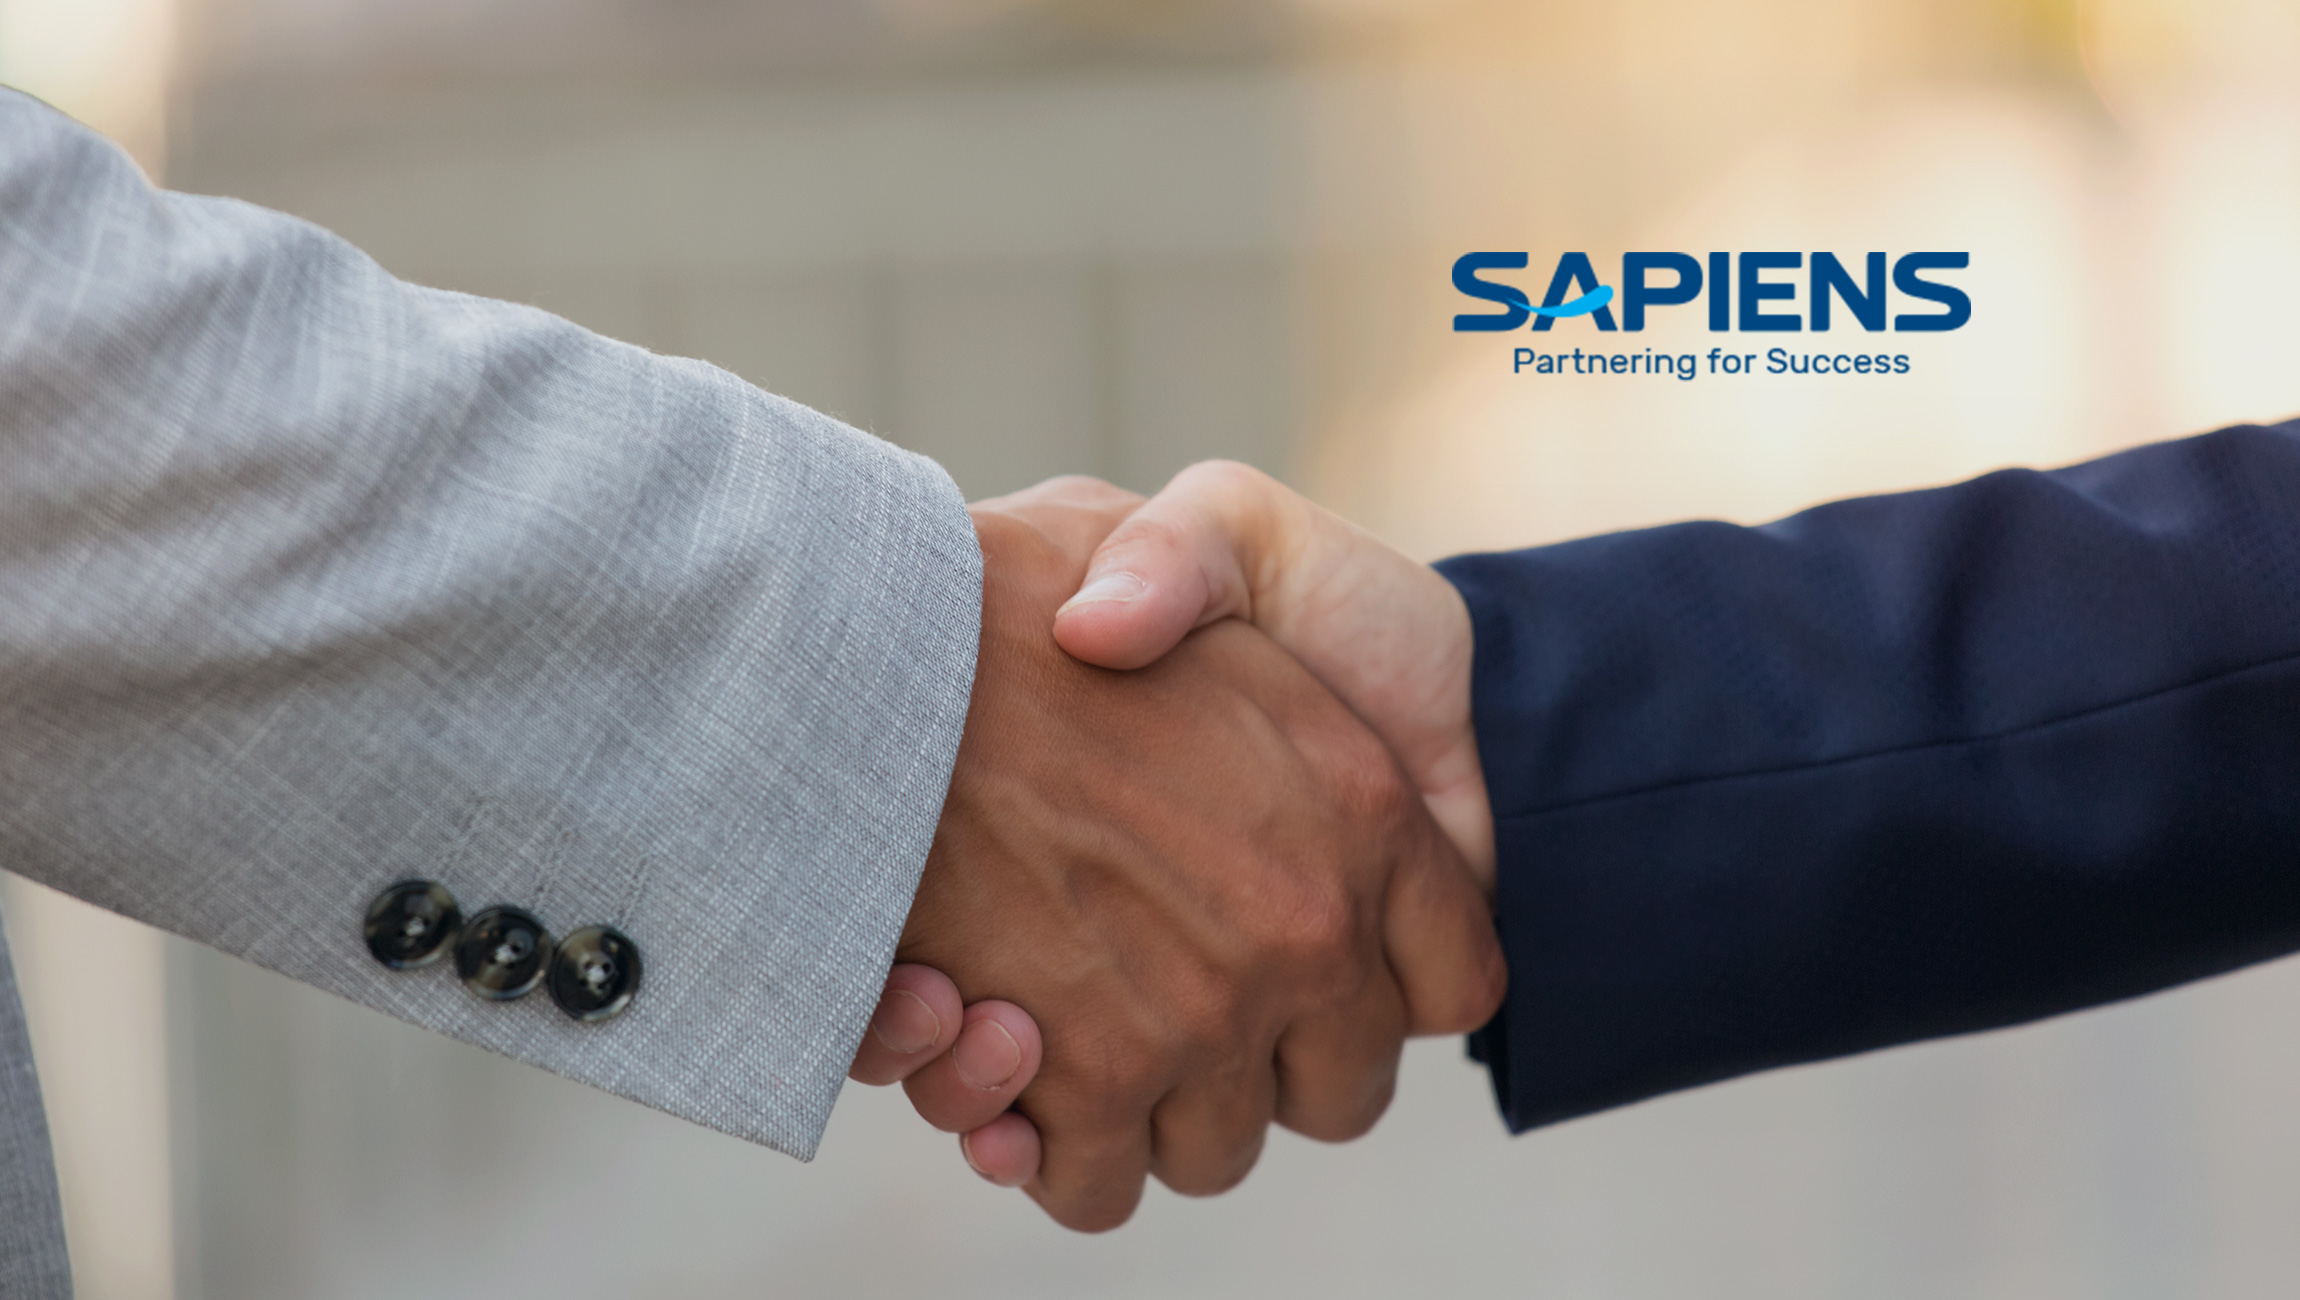 Sapiens Expands Its Partnership Ecosystem With Lightico to Enhance Digital Customer Interactions for the Insurance Market